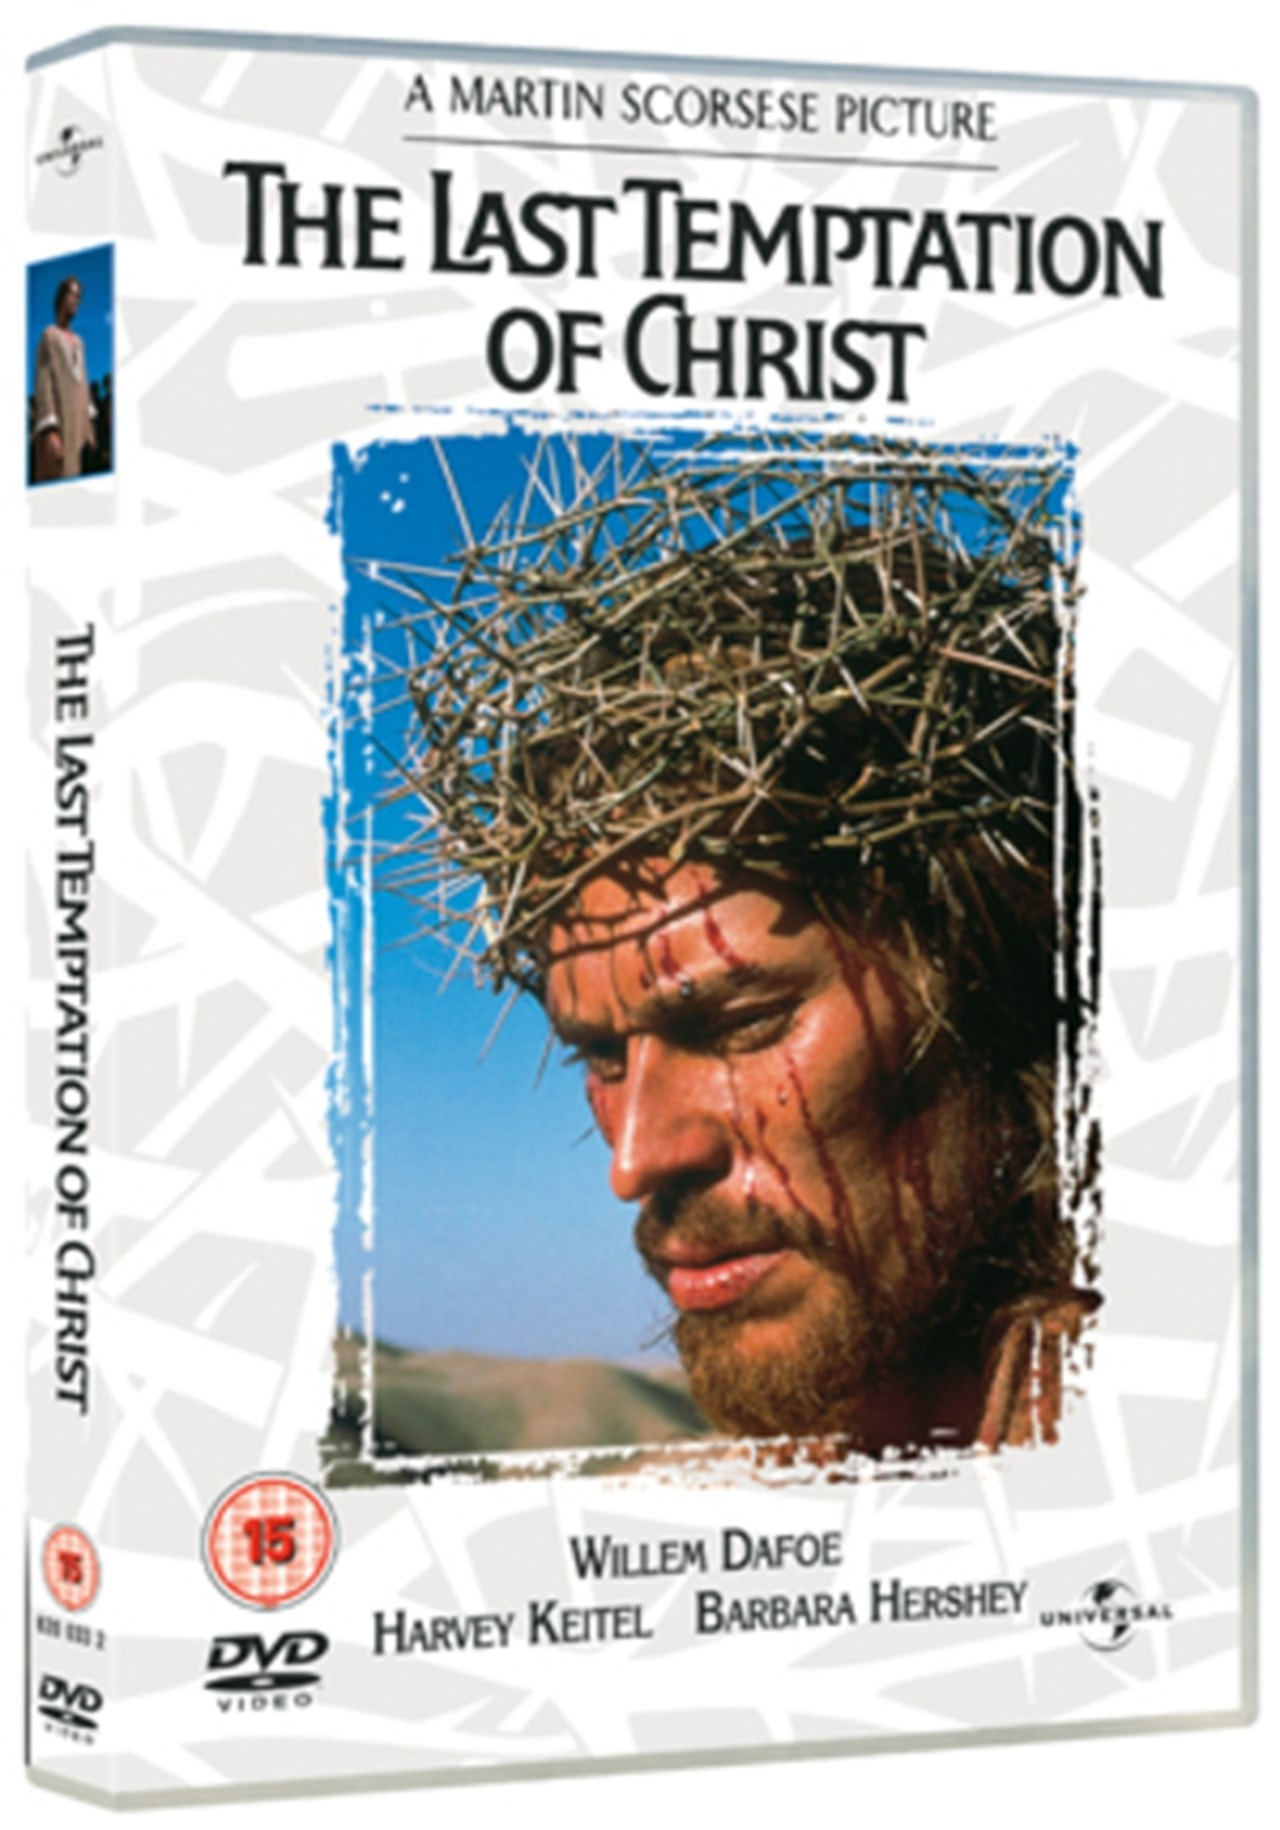 The Last Temptation of Christ - 1